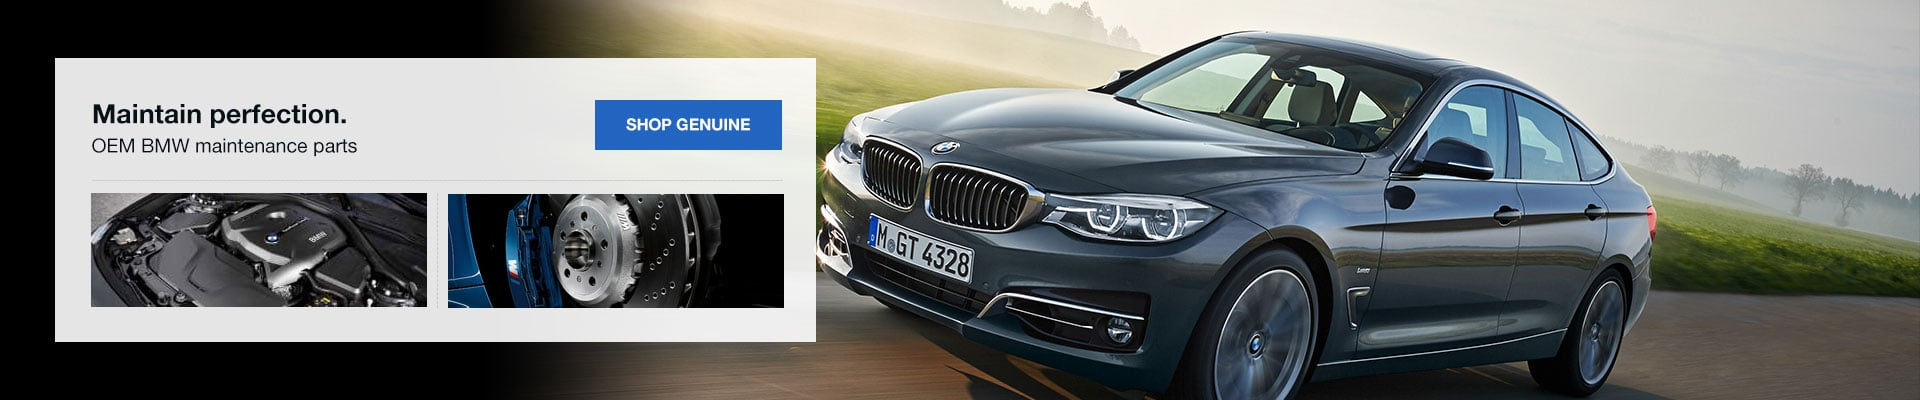 BMW Maintenance Parts